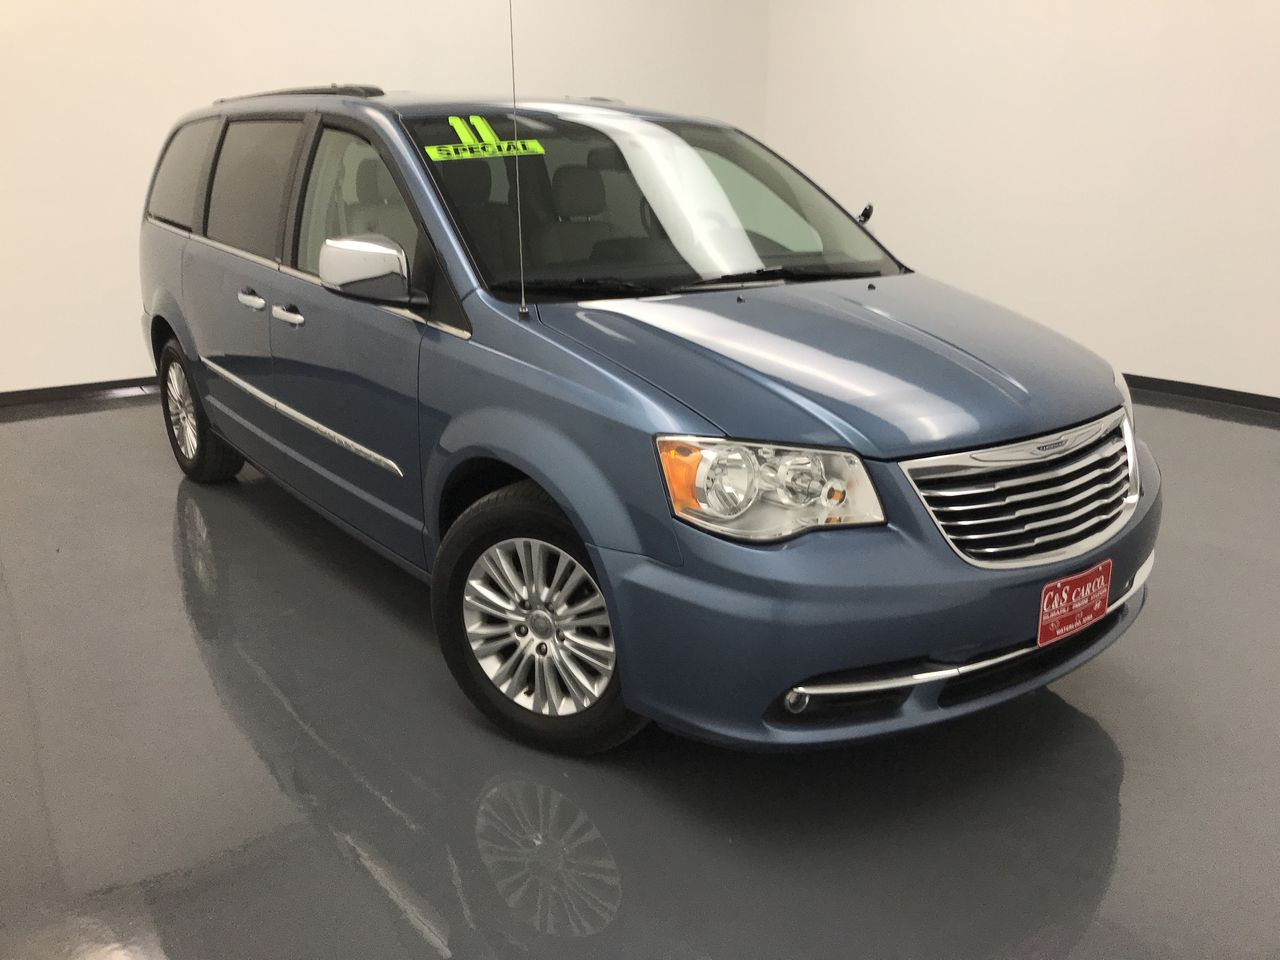 2011 Chrysler Town & Country  - C & S Car Company